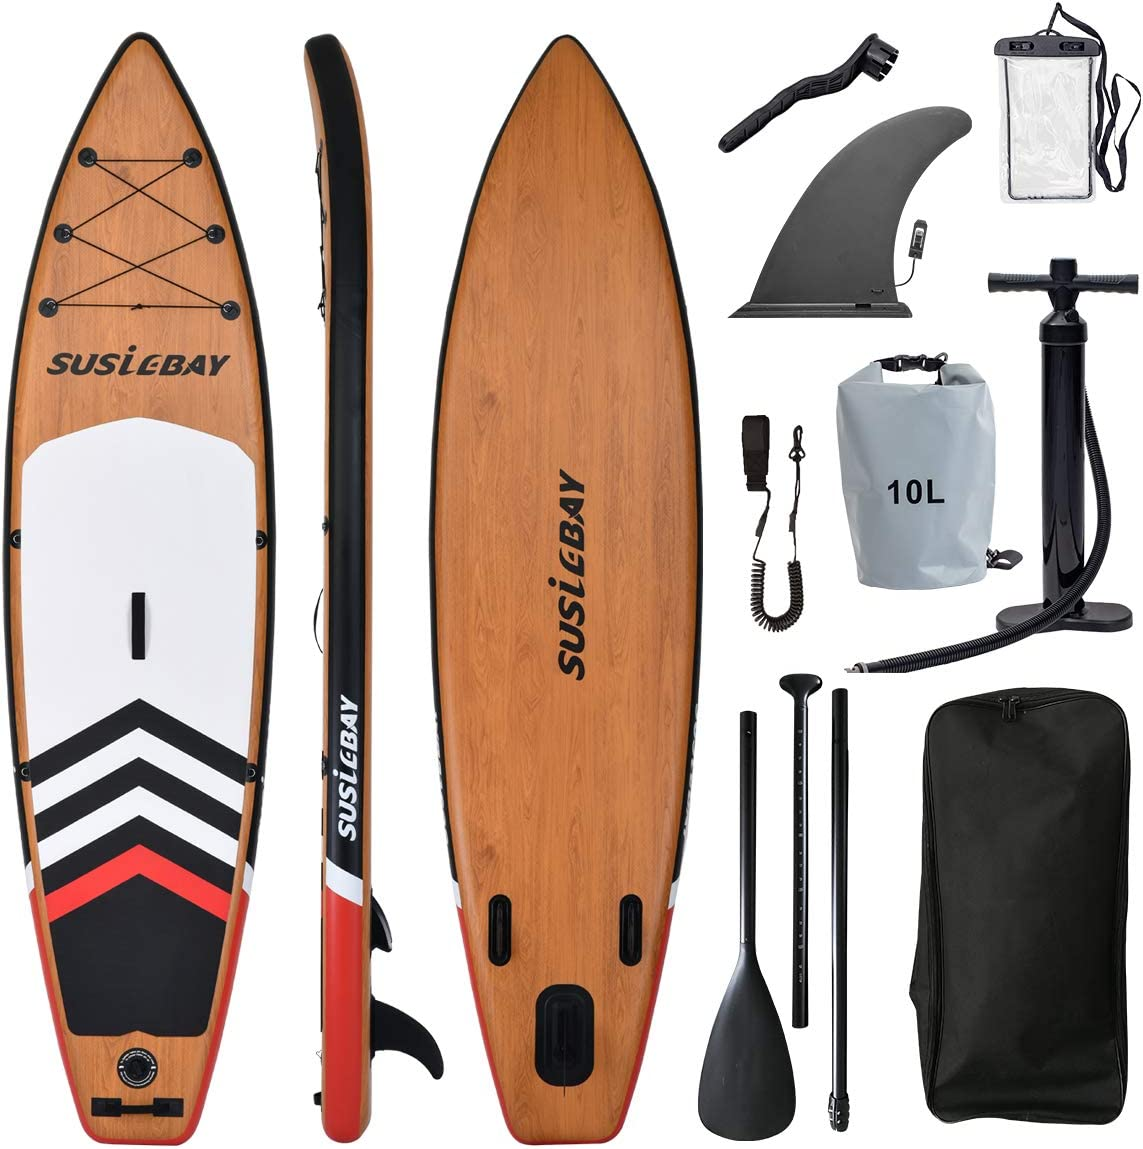 SUSIEBAY Super popular specialty store Inflatable Dealing full price reduction Stand Up Paddle Floating Boards Board Yoga